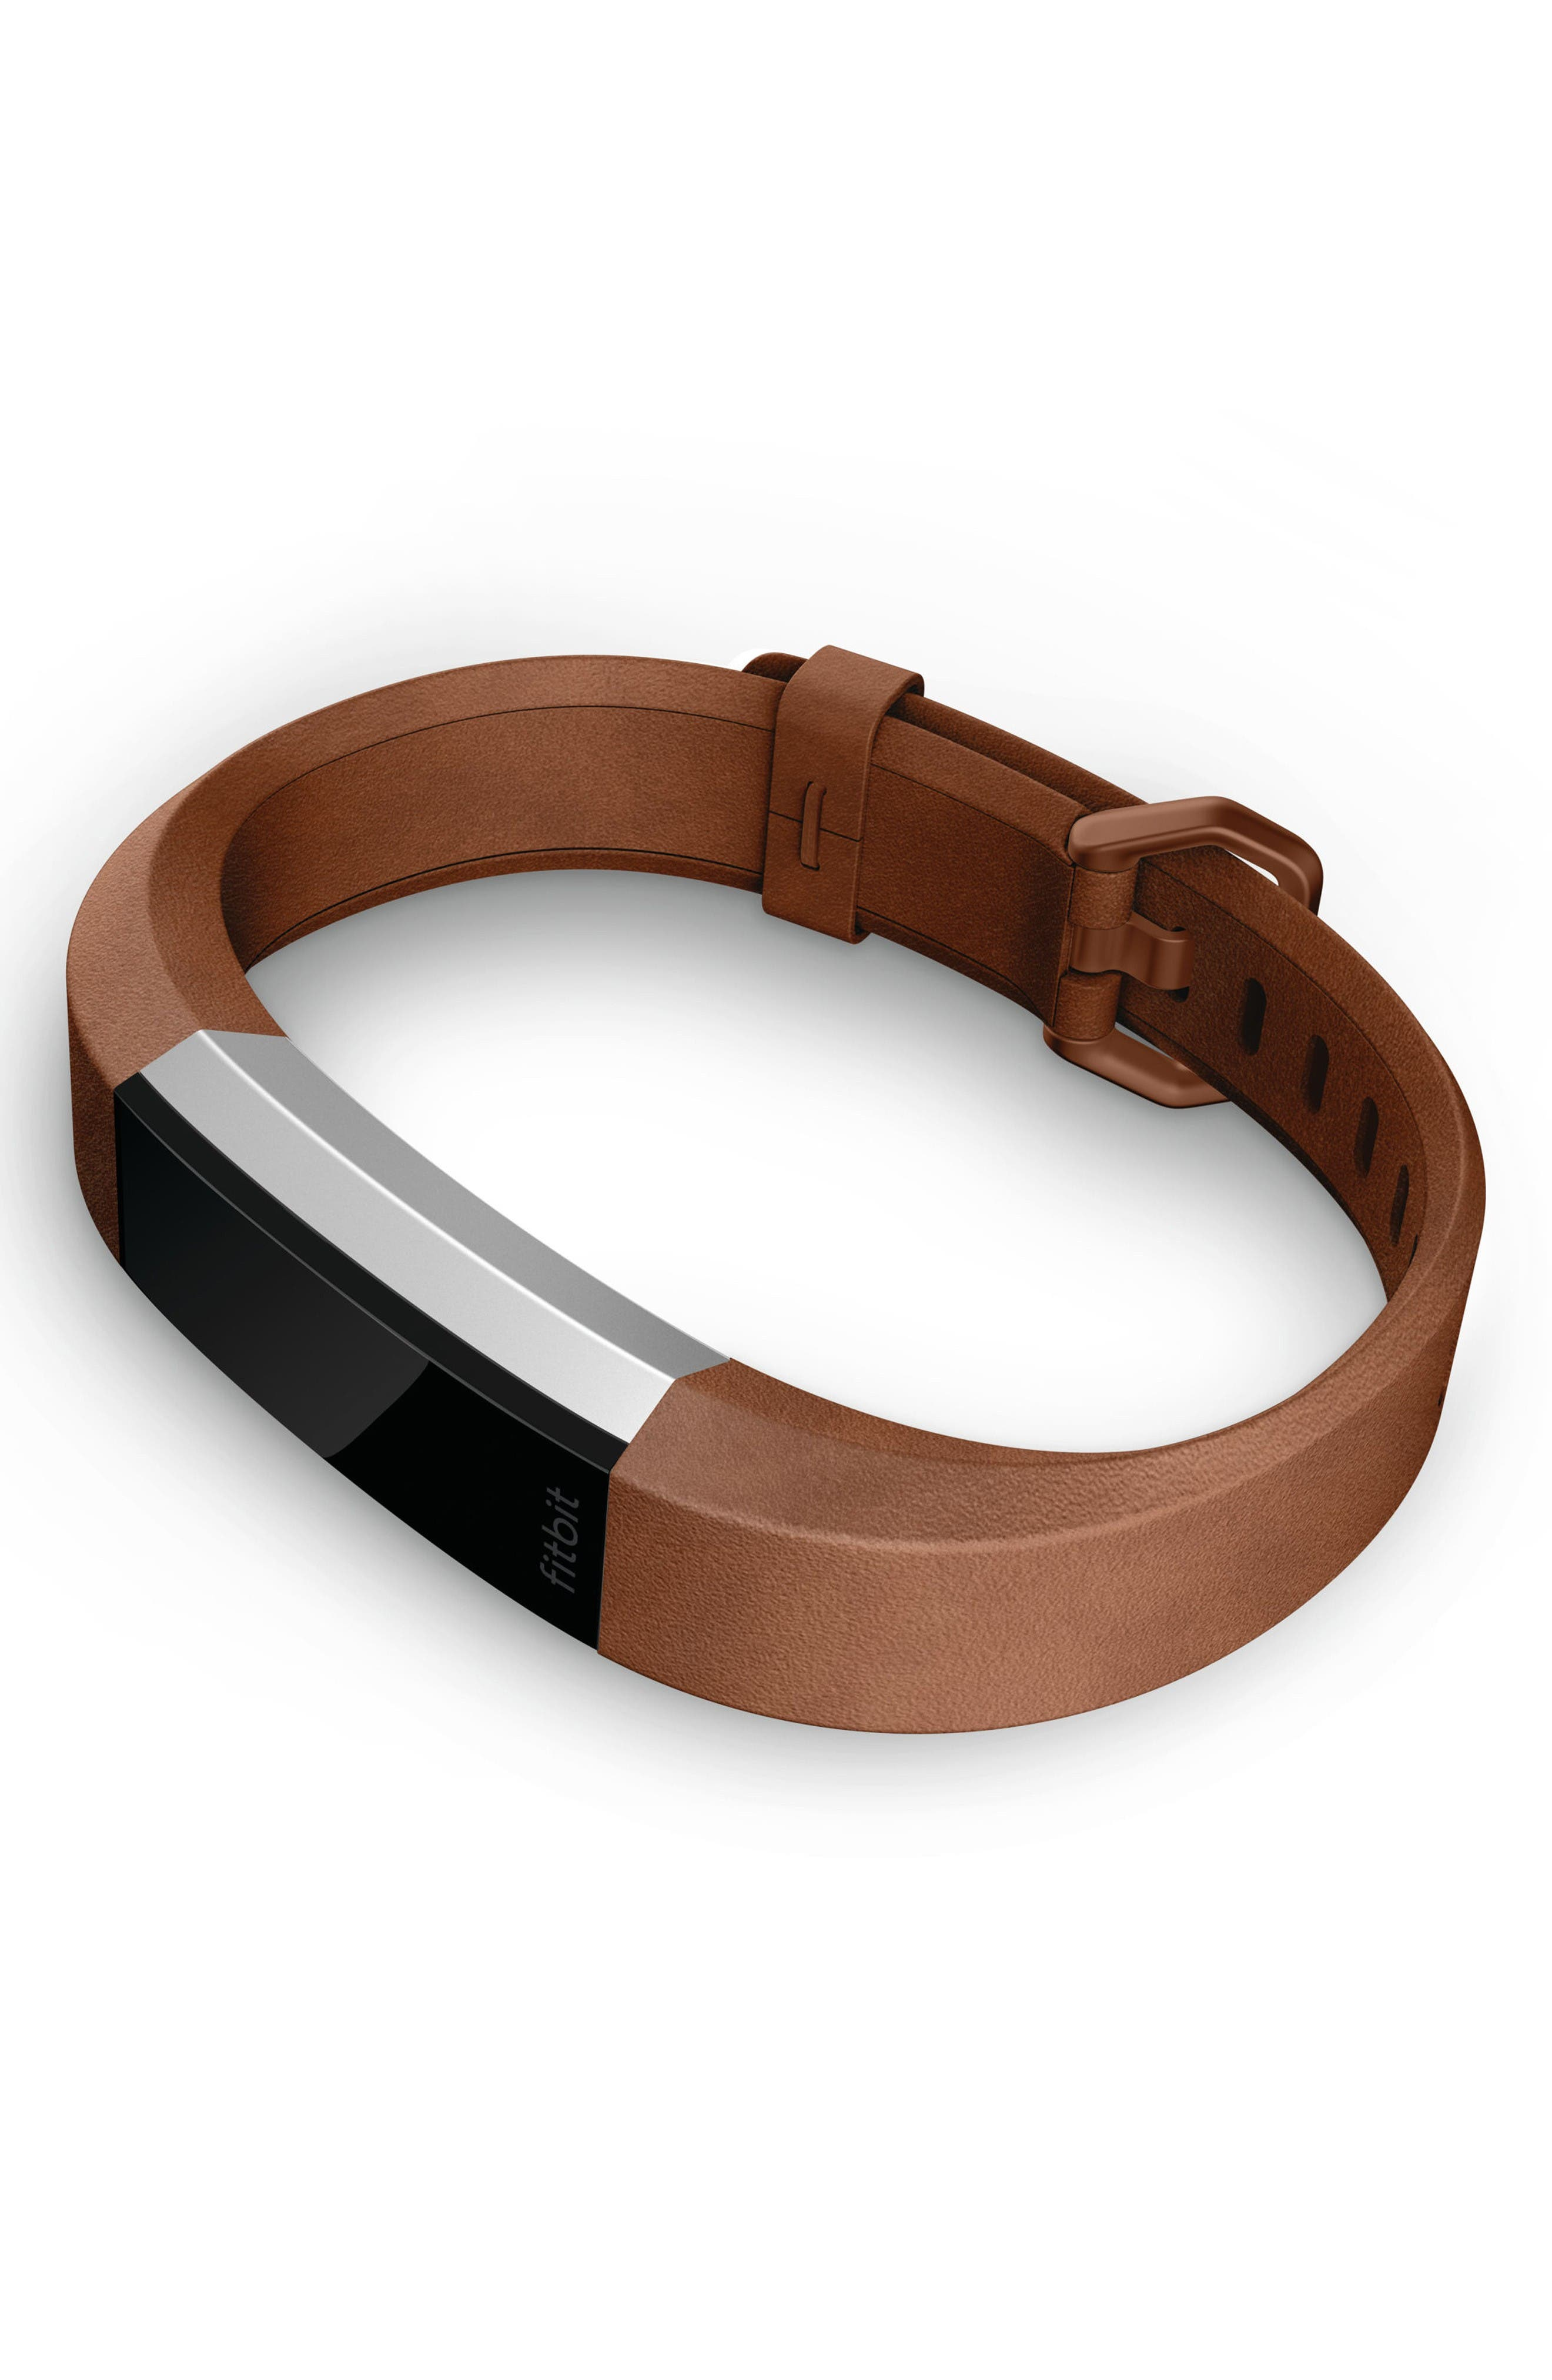 Alternate Image 3  - Fitbit Alta HR Leather Accessory Band